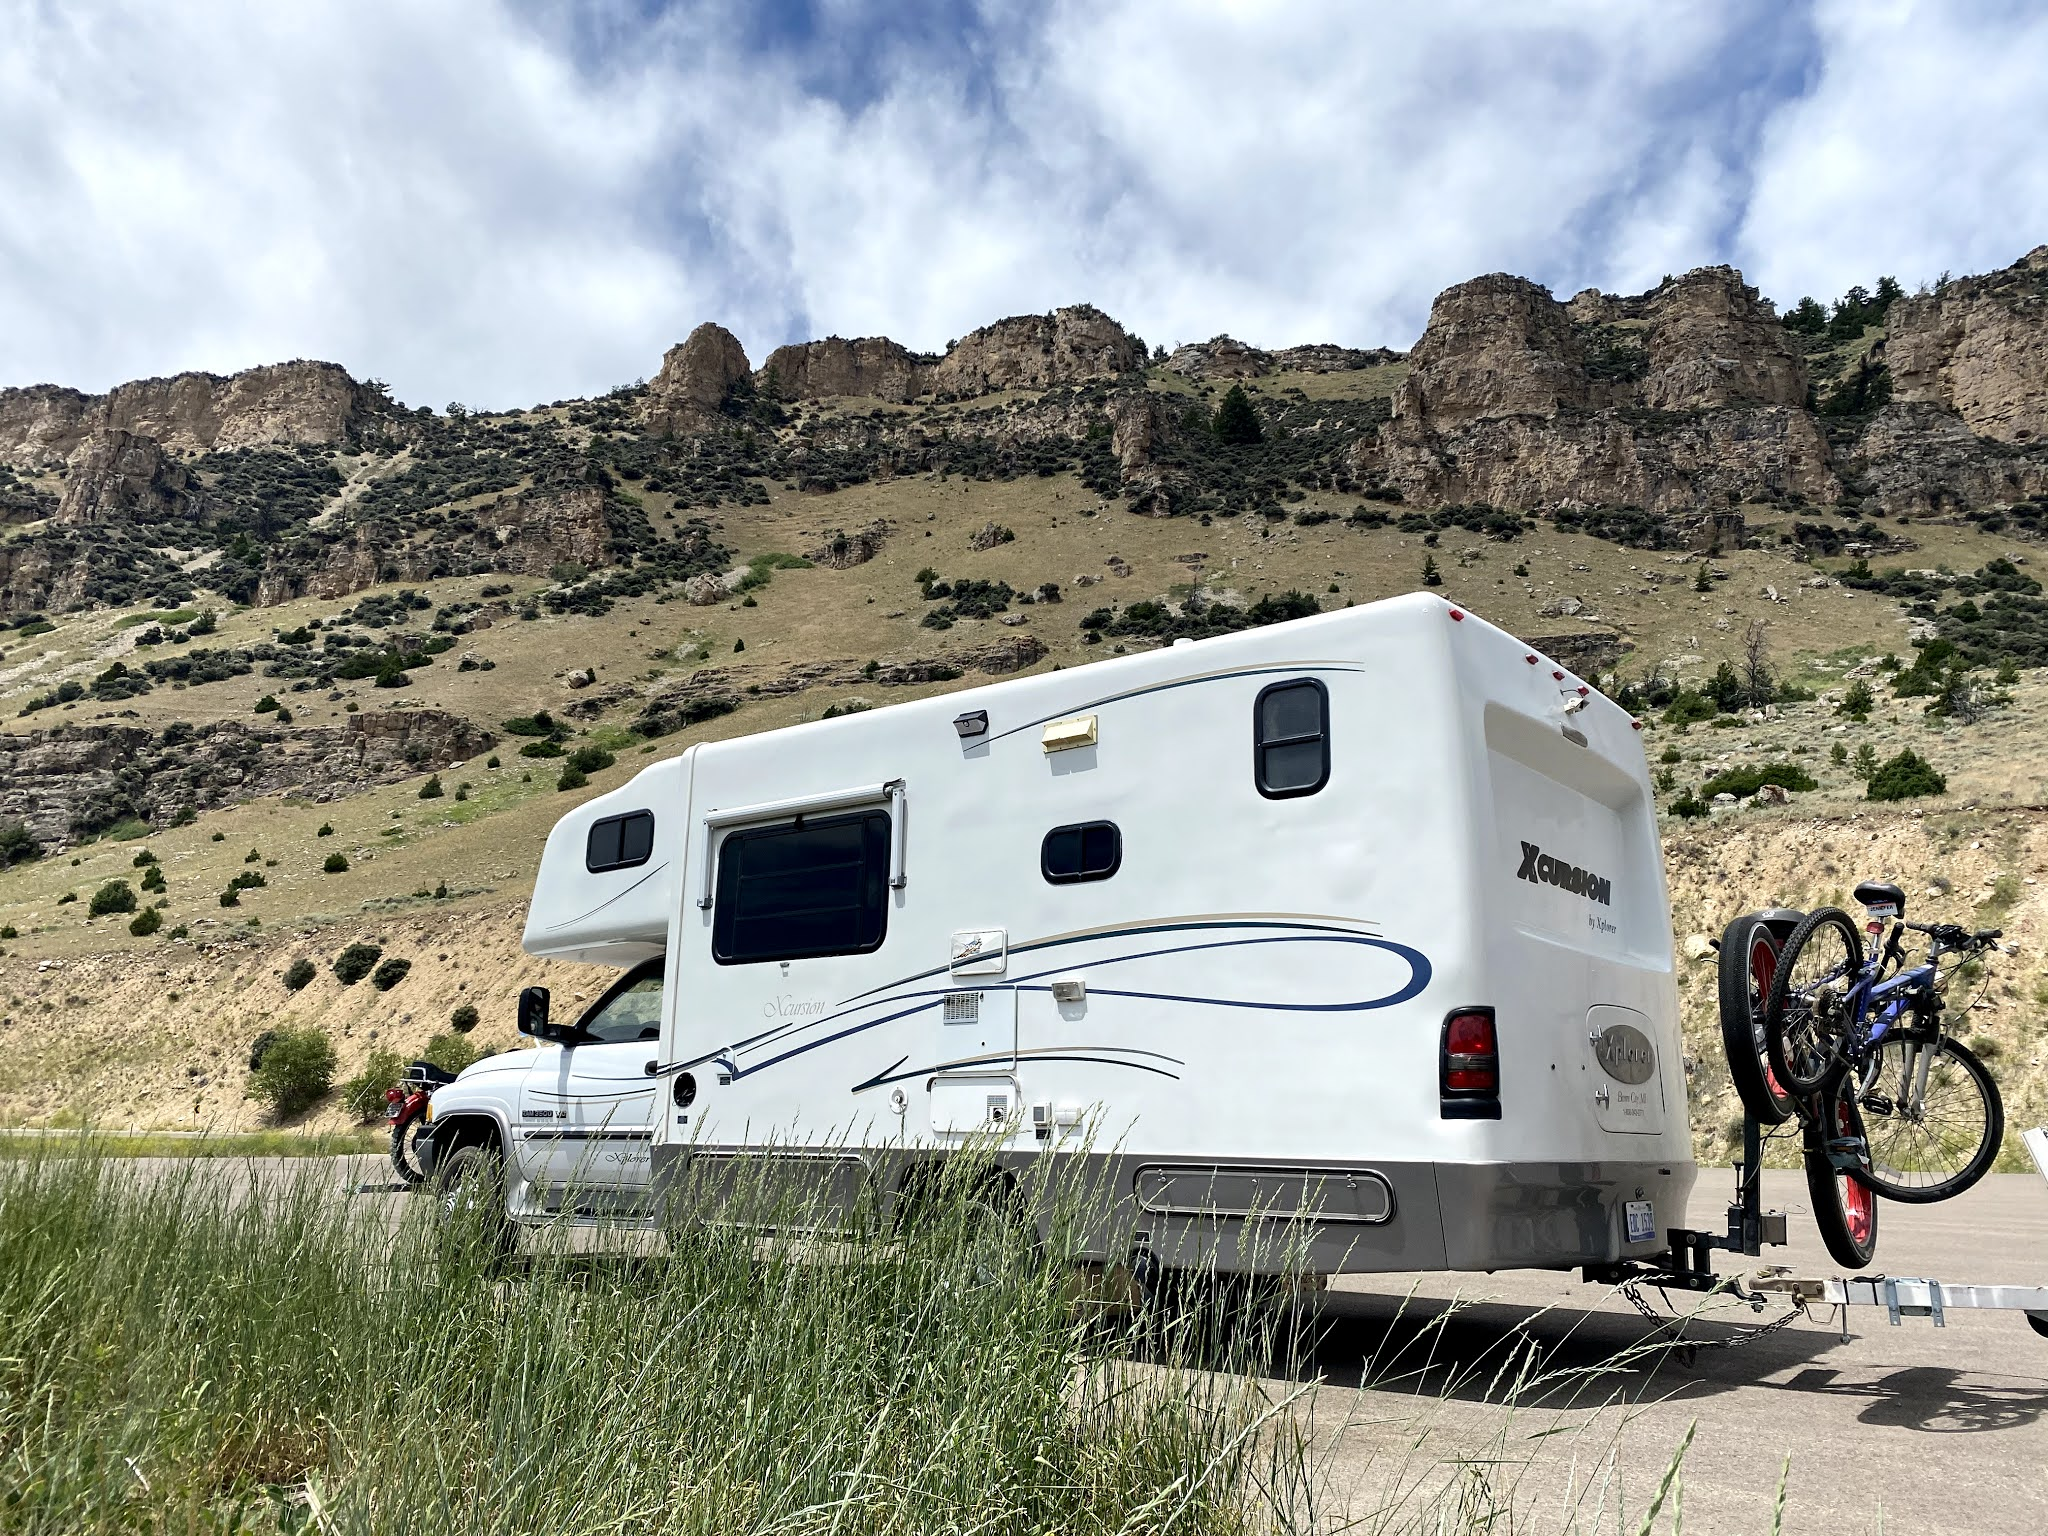 Camping in Wyoming | biblio-style.com